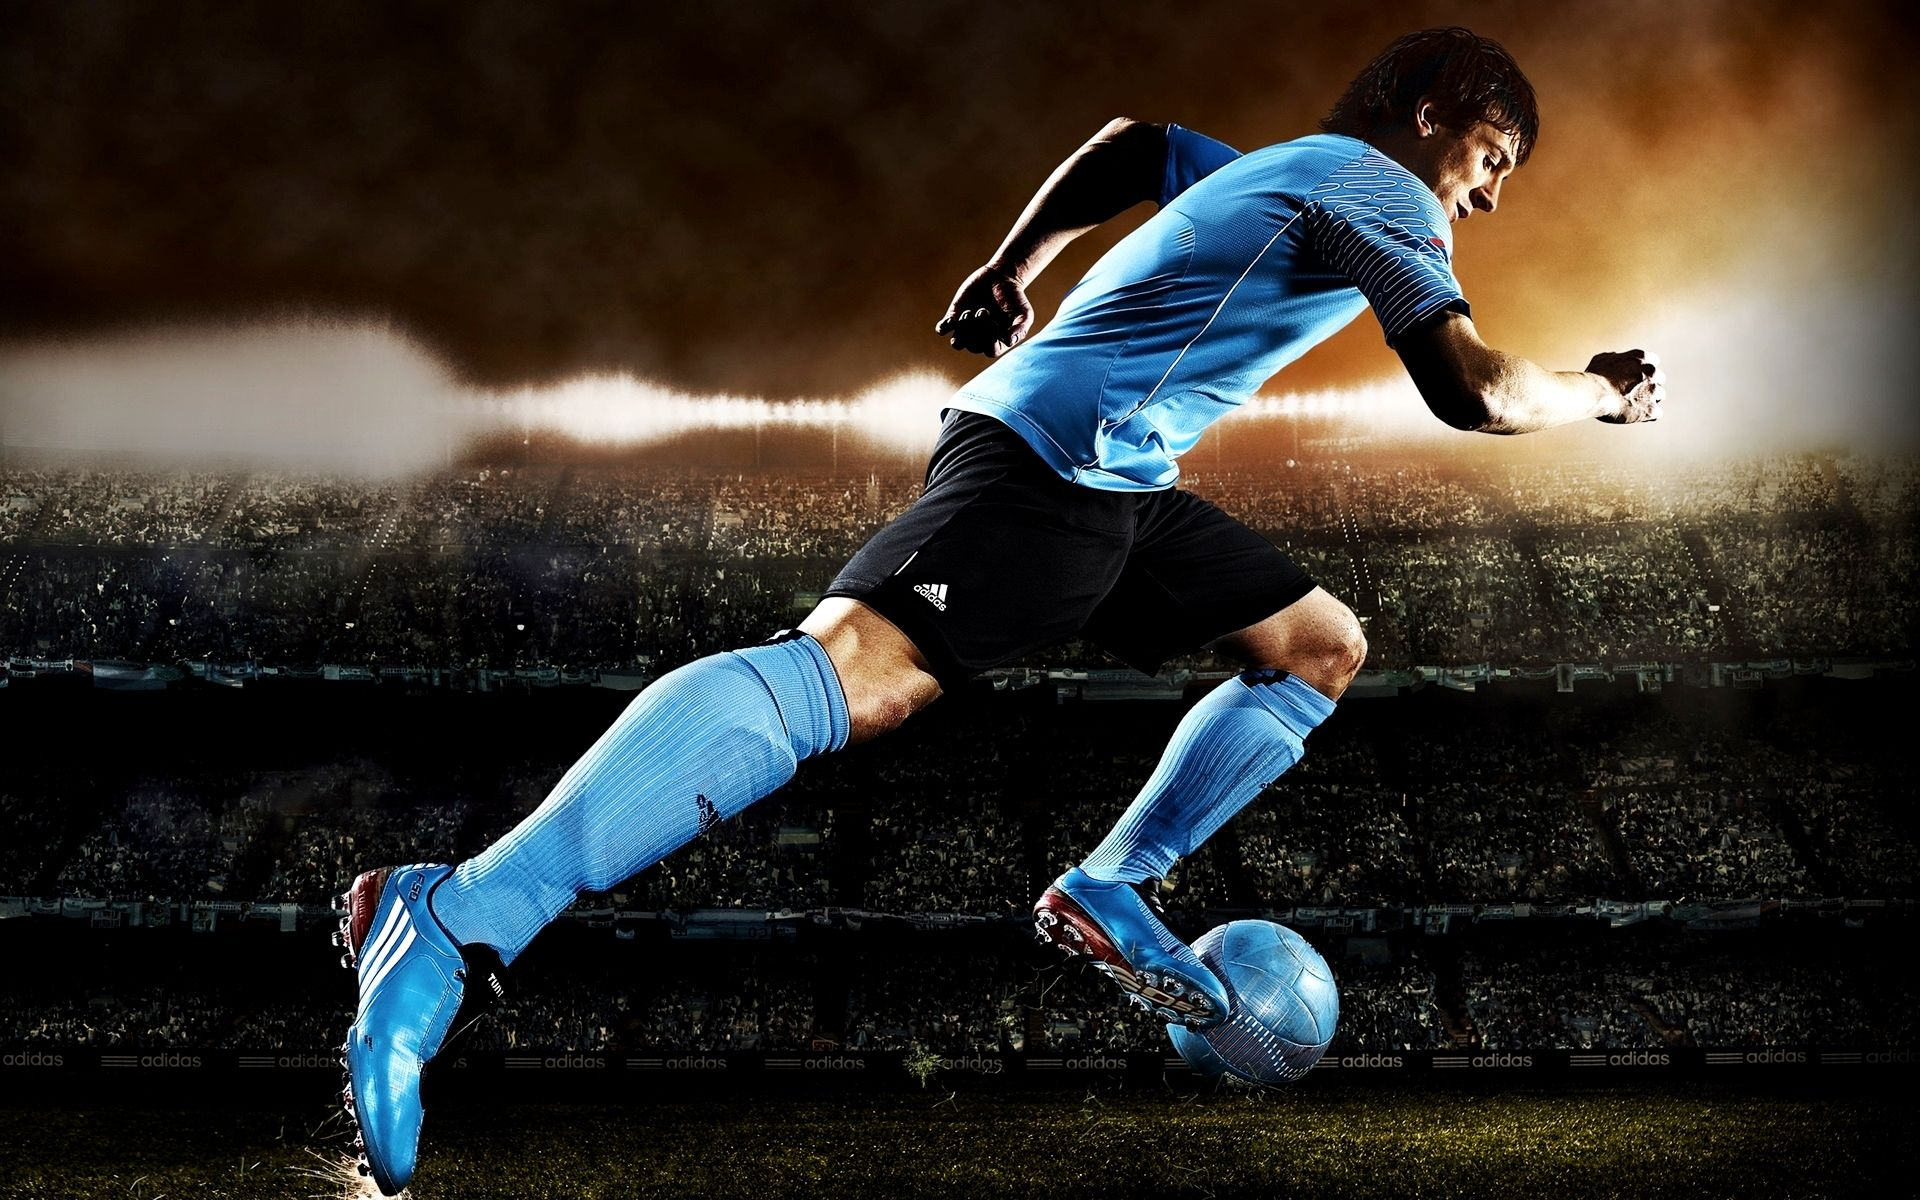 Wallpapers Sports HD